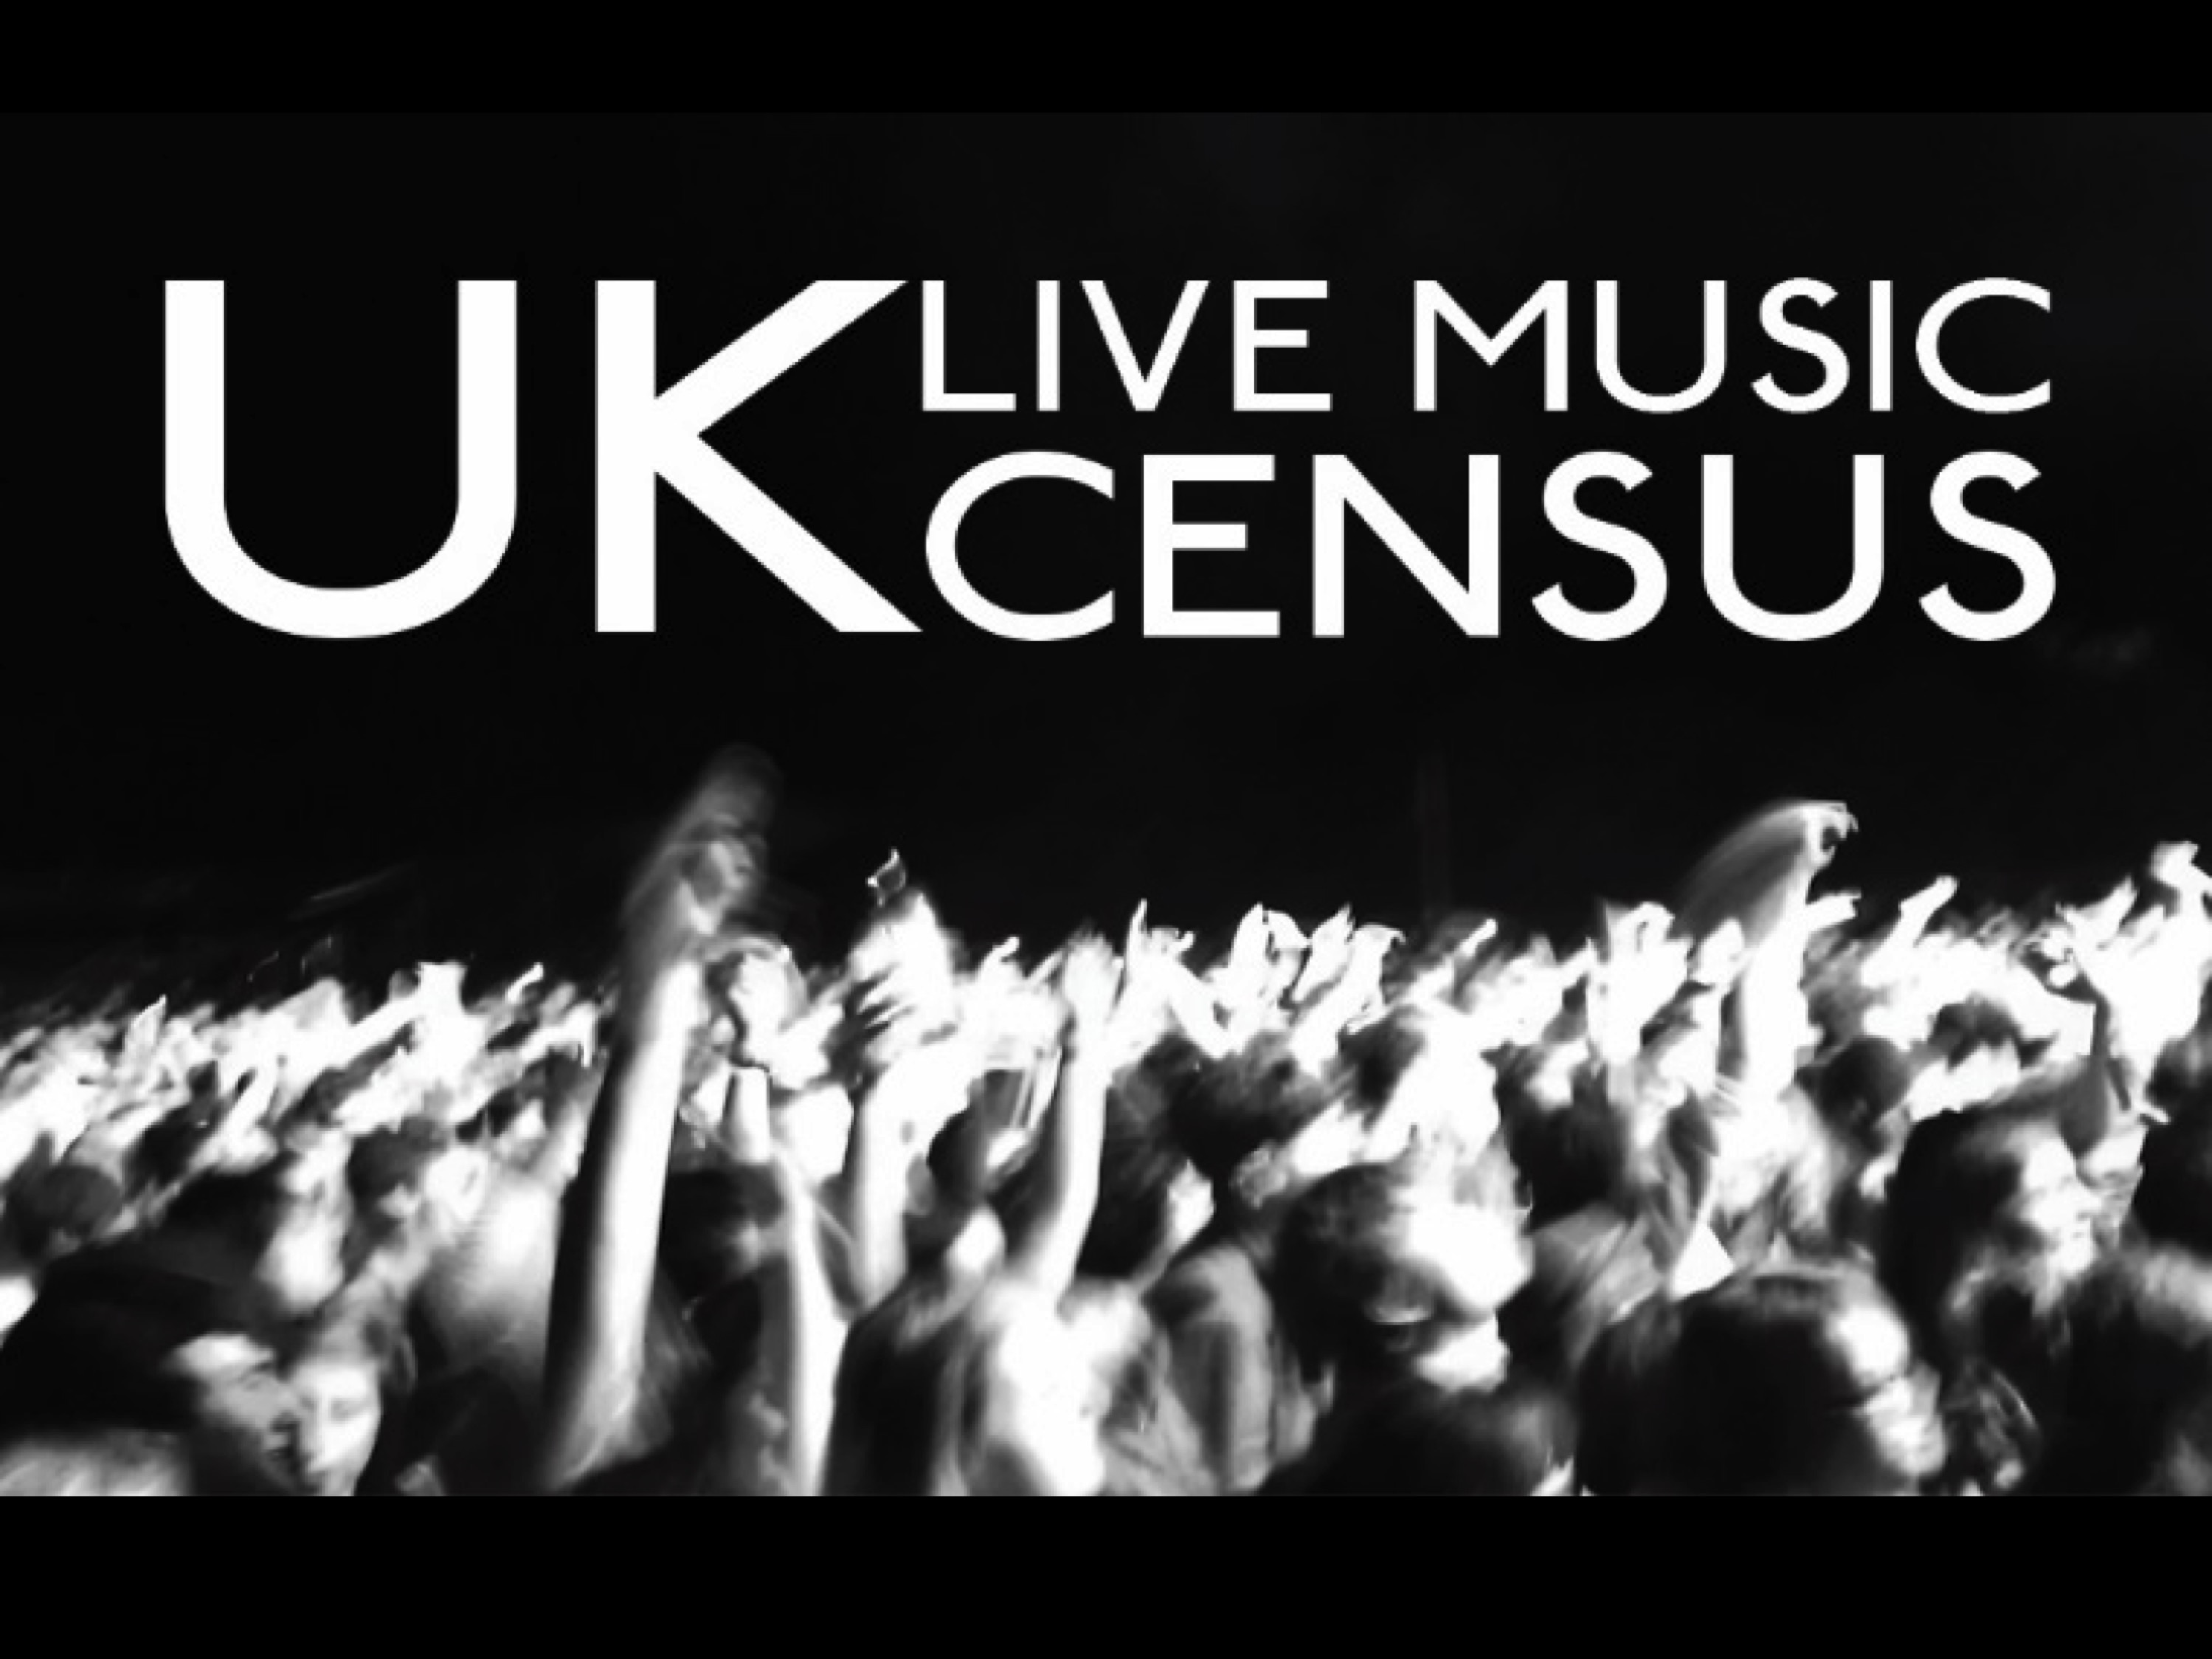 Advertisement for the live music census